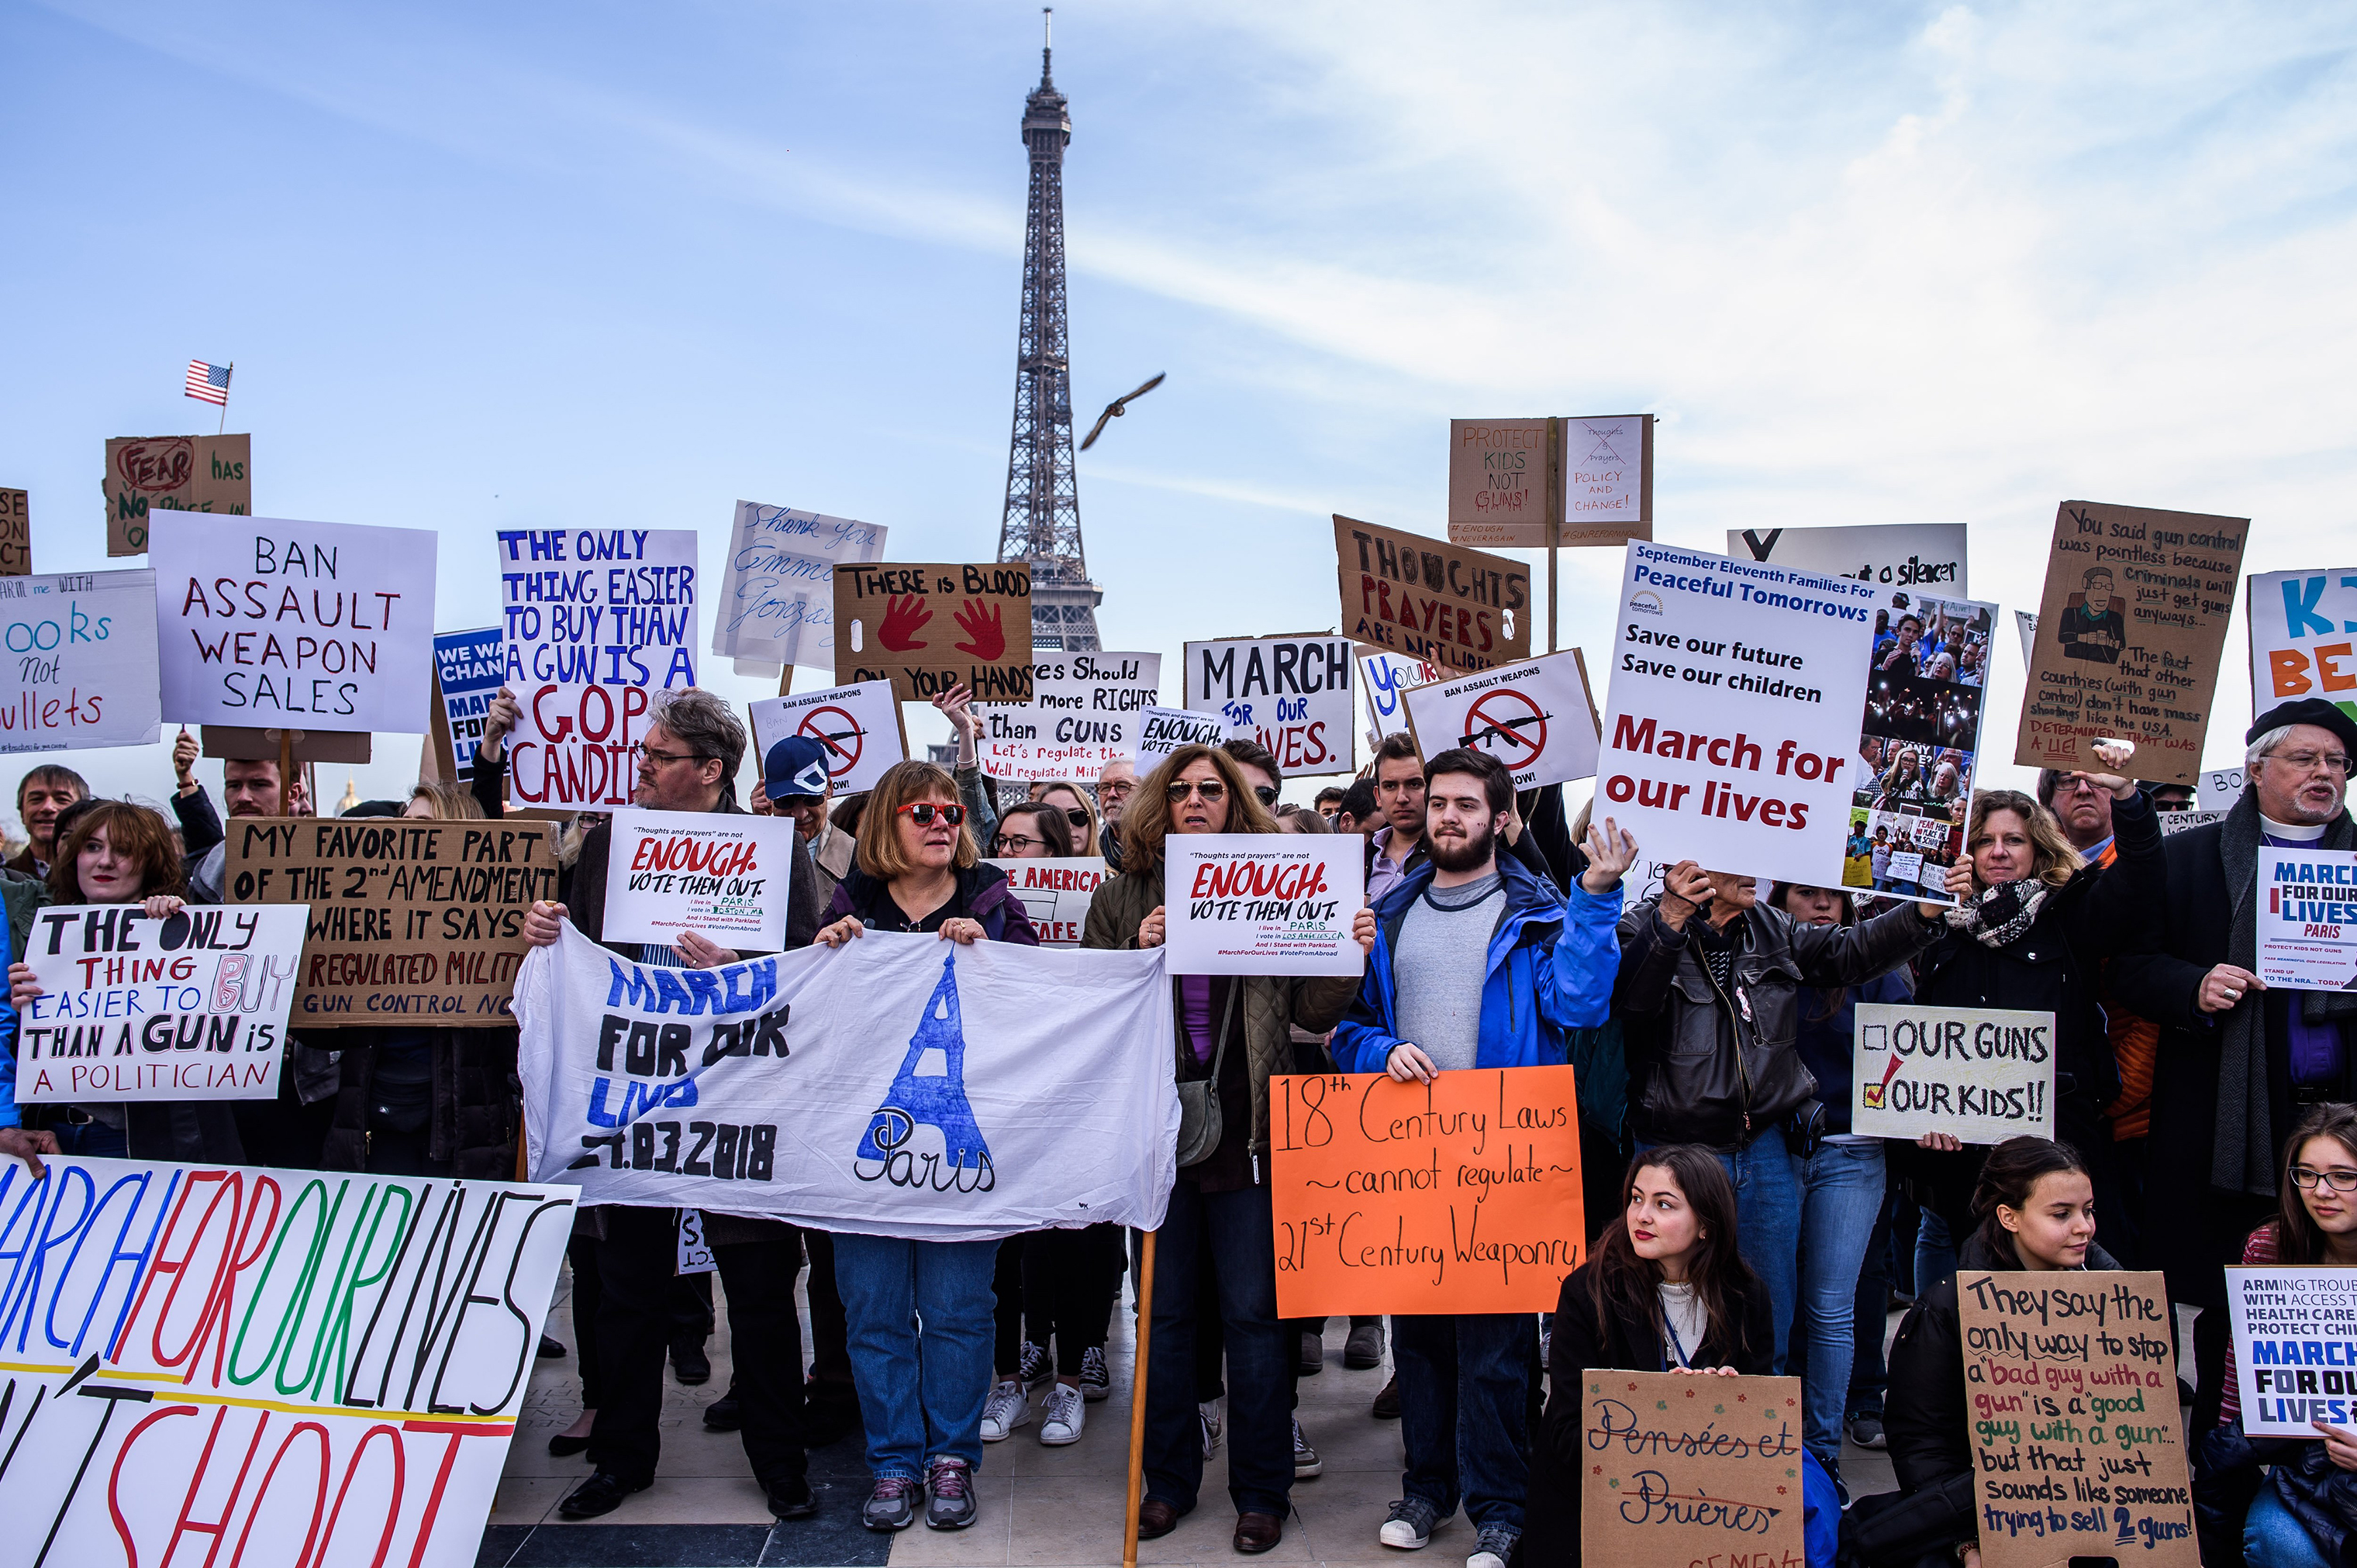 A crowd of French and Americans hold anti-gun posters near the Eiffel Tower.